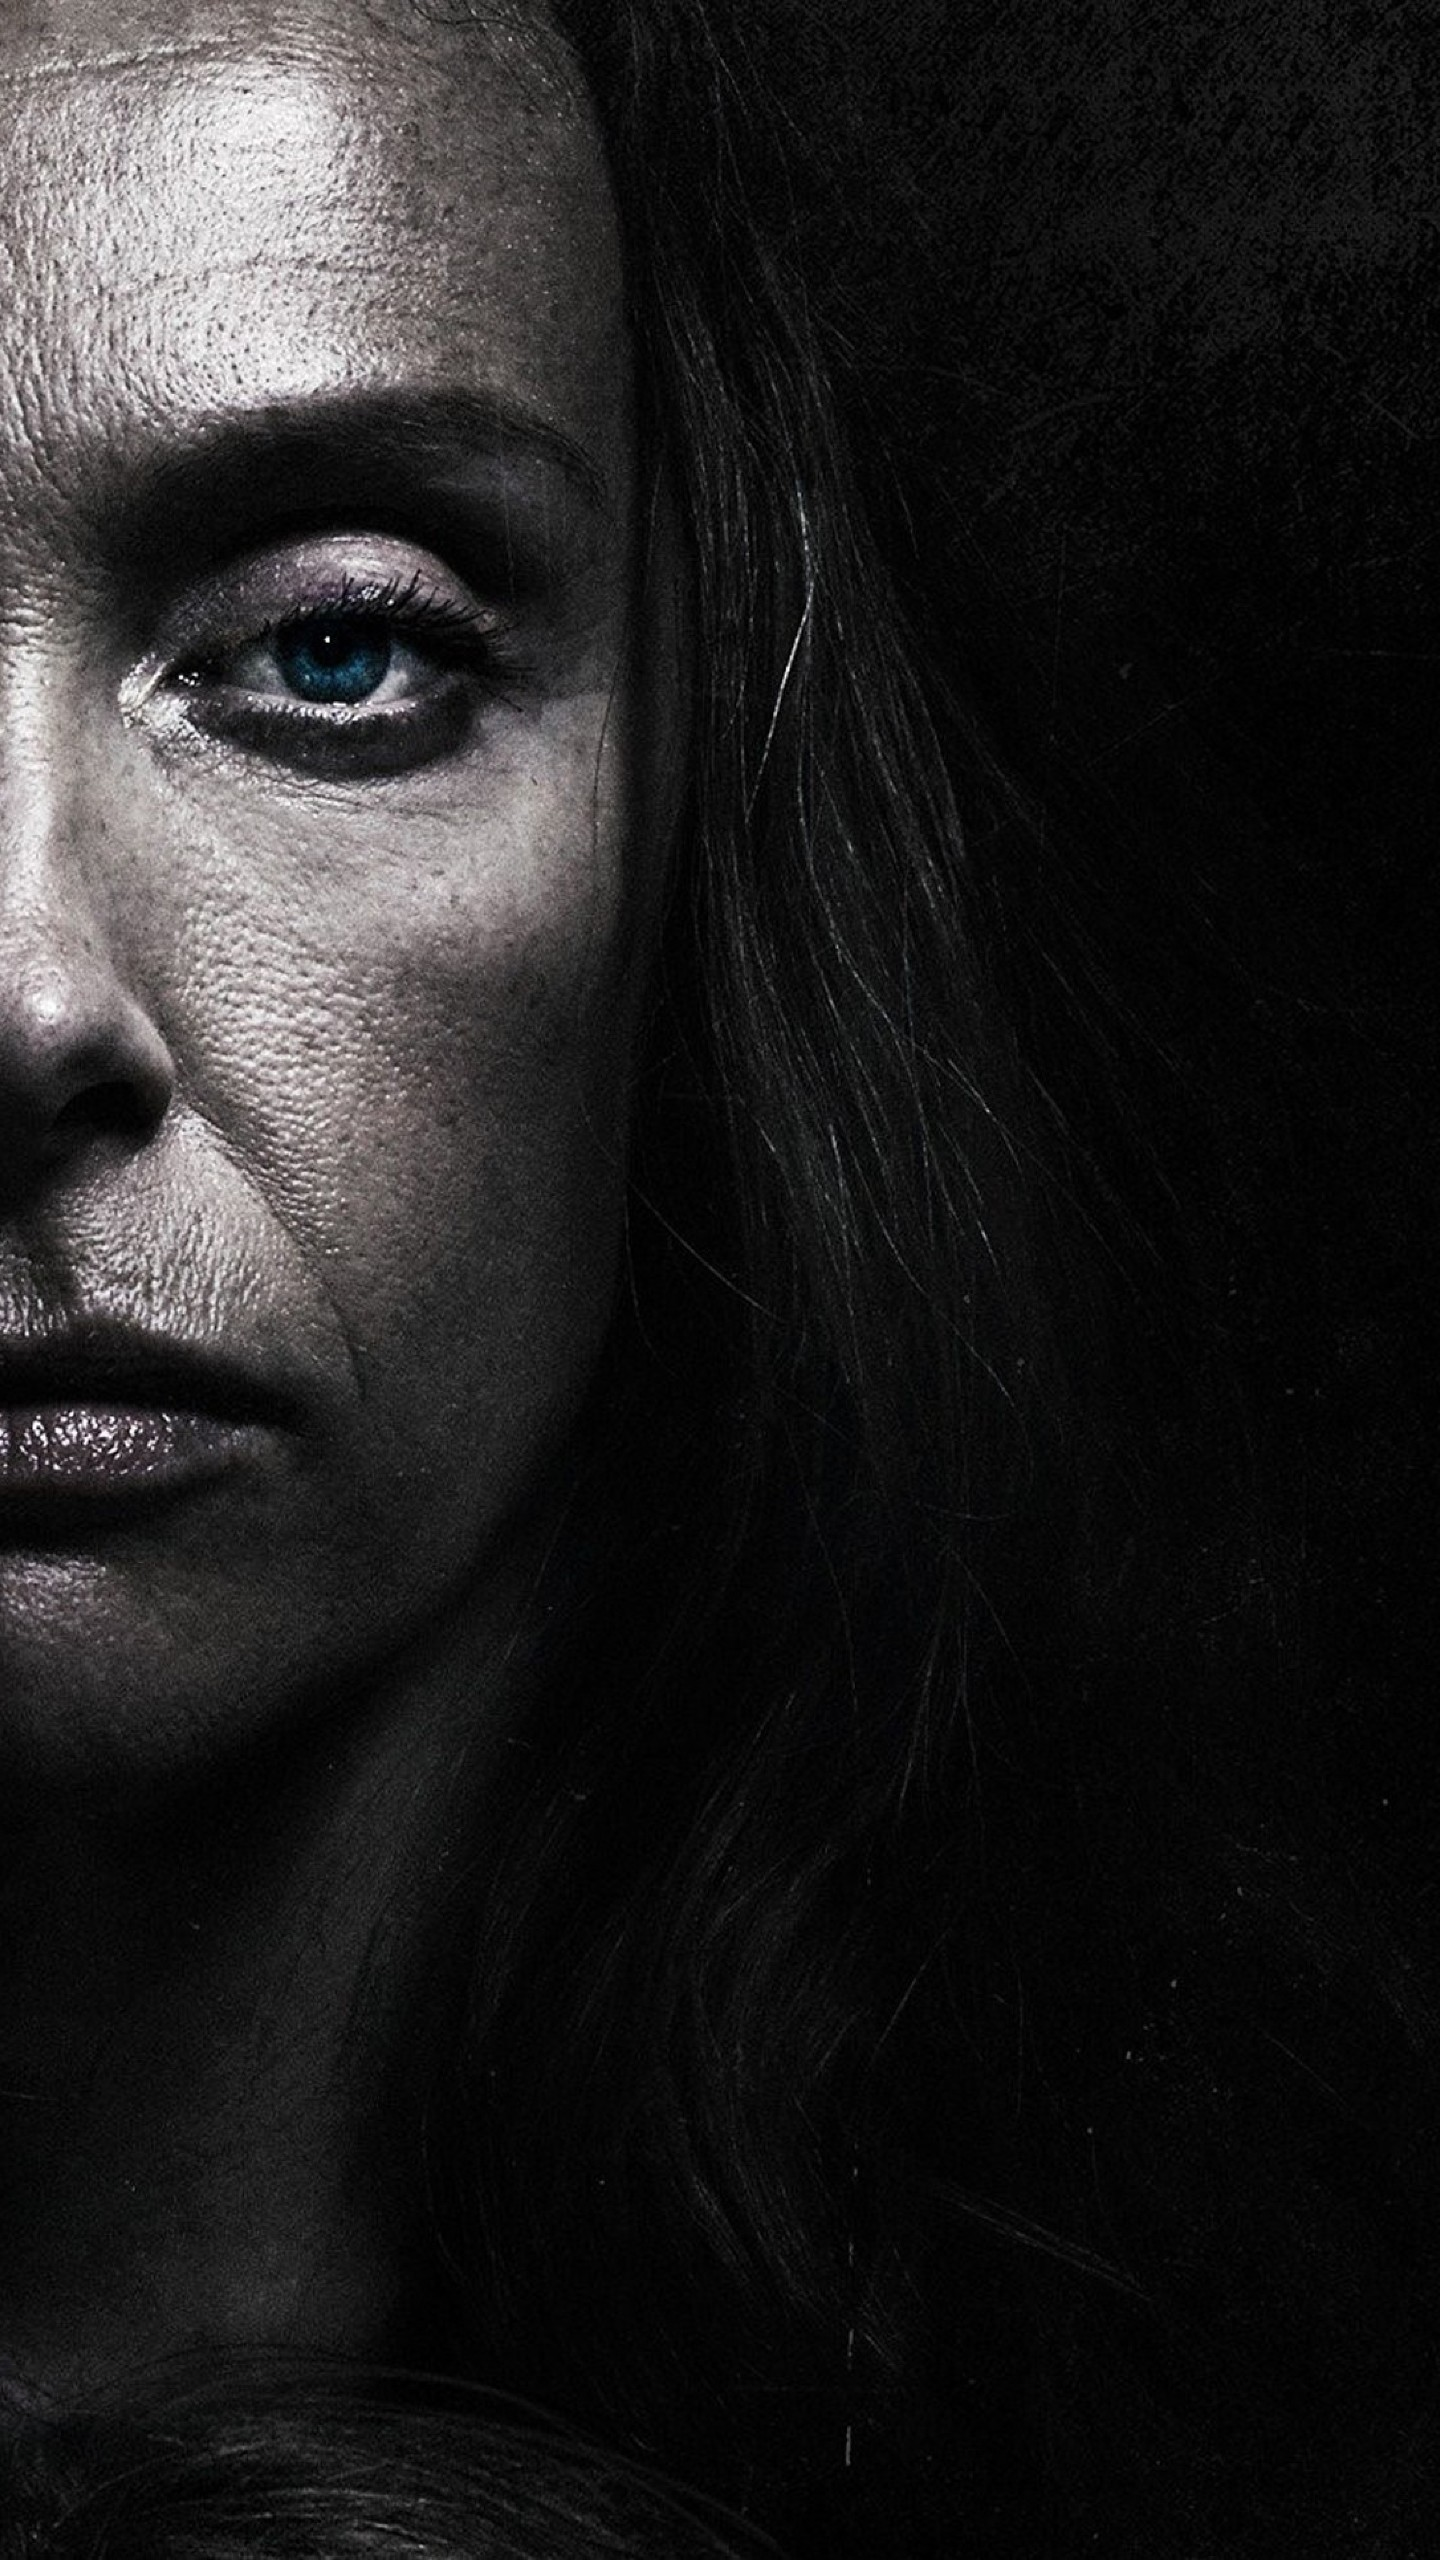 Download Hereditary 2018 Movie Official Poster 240x400 Resolution